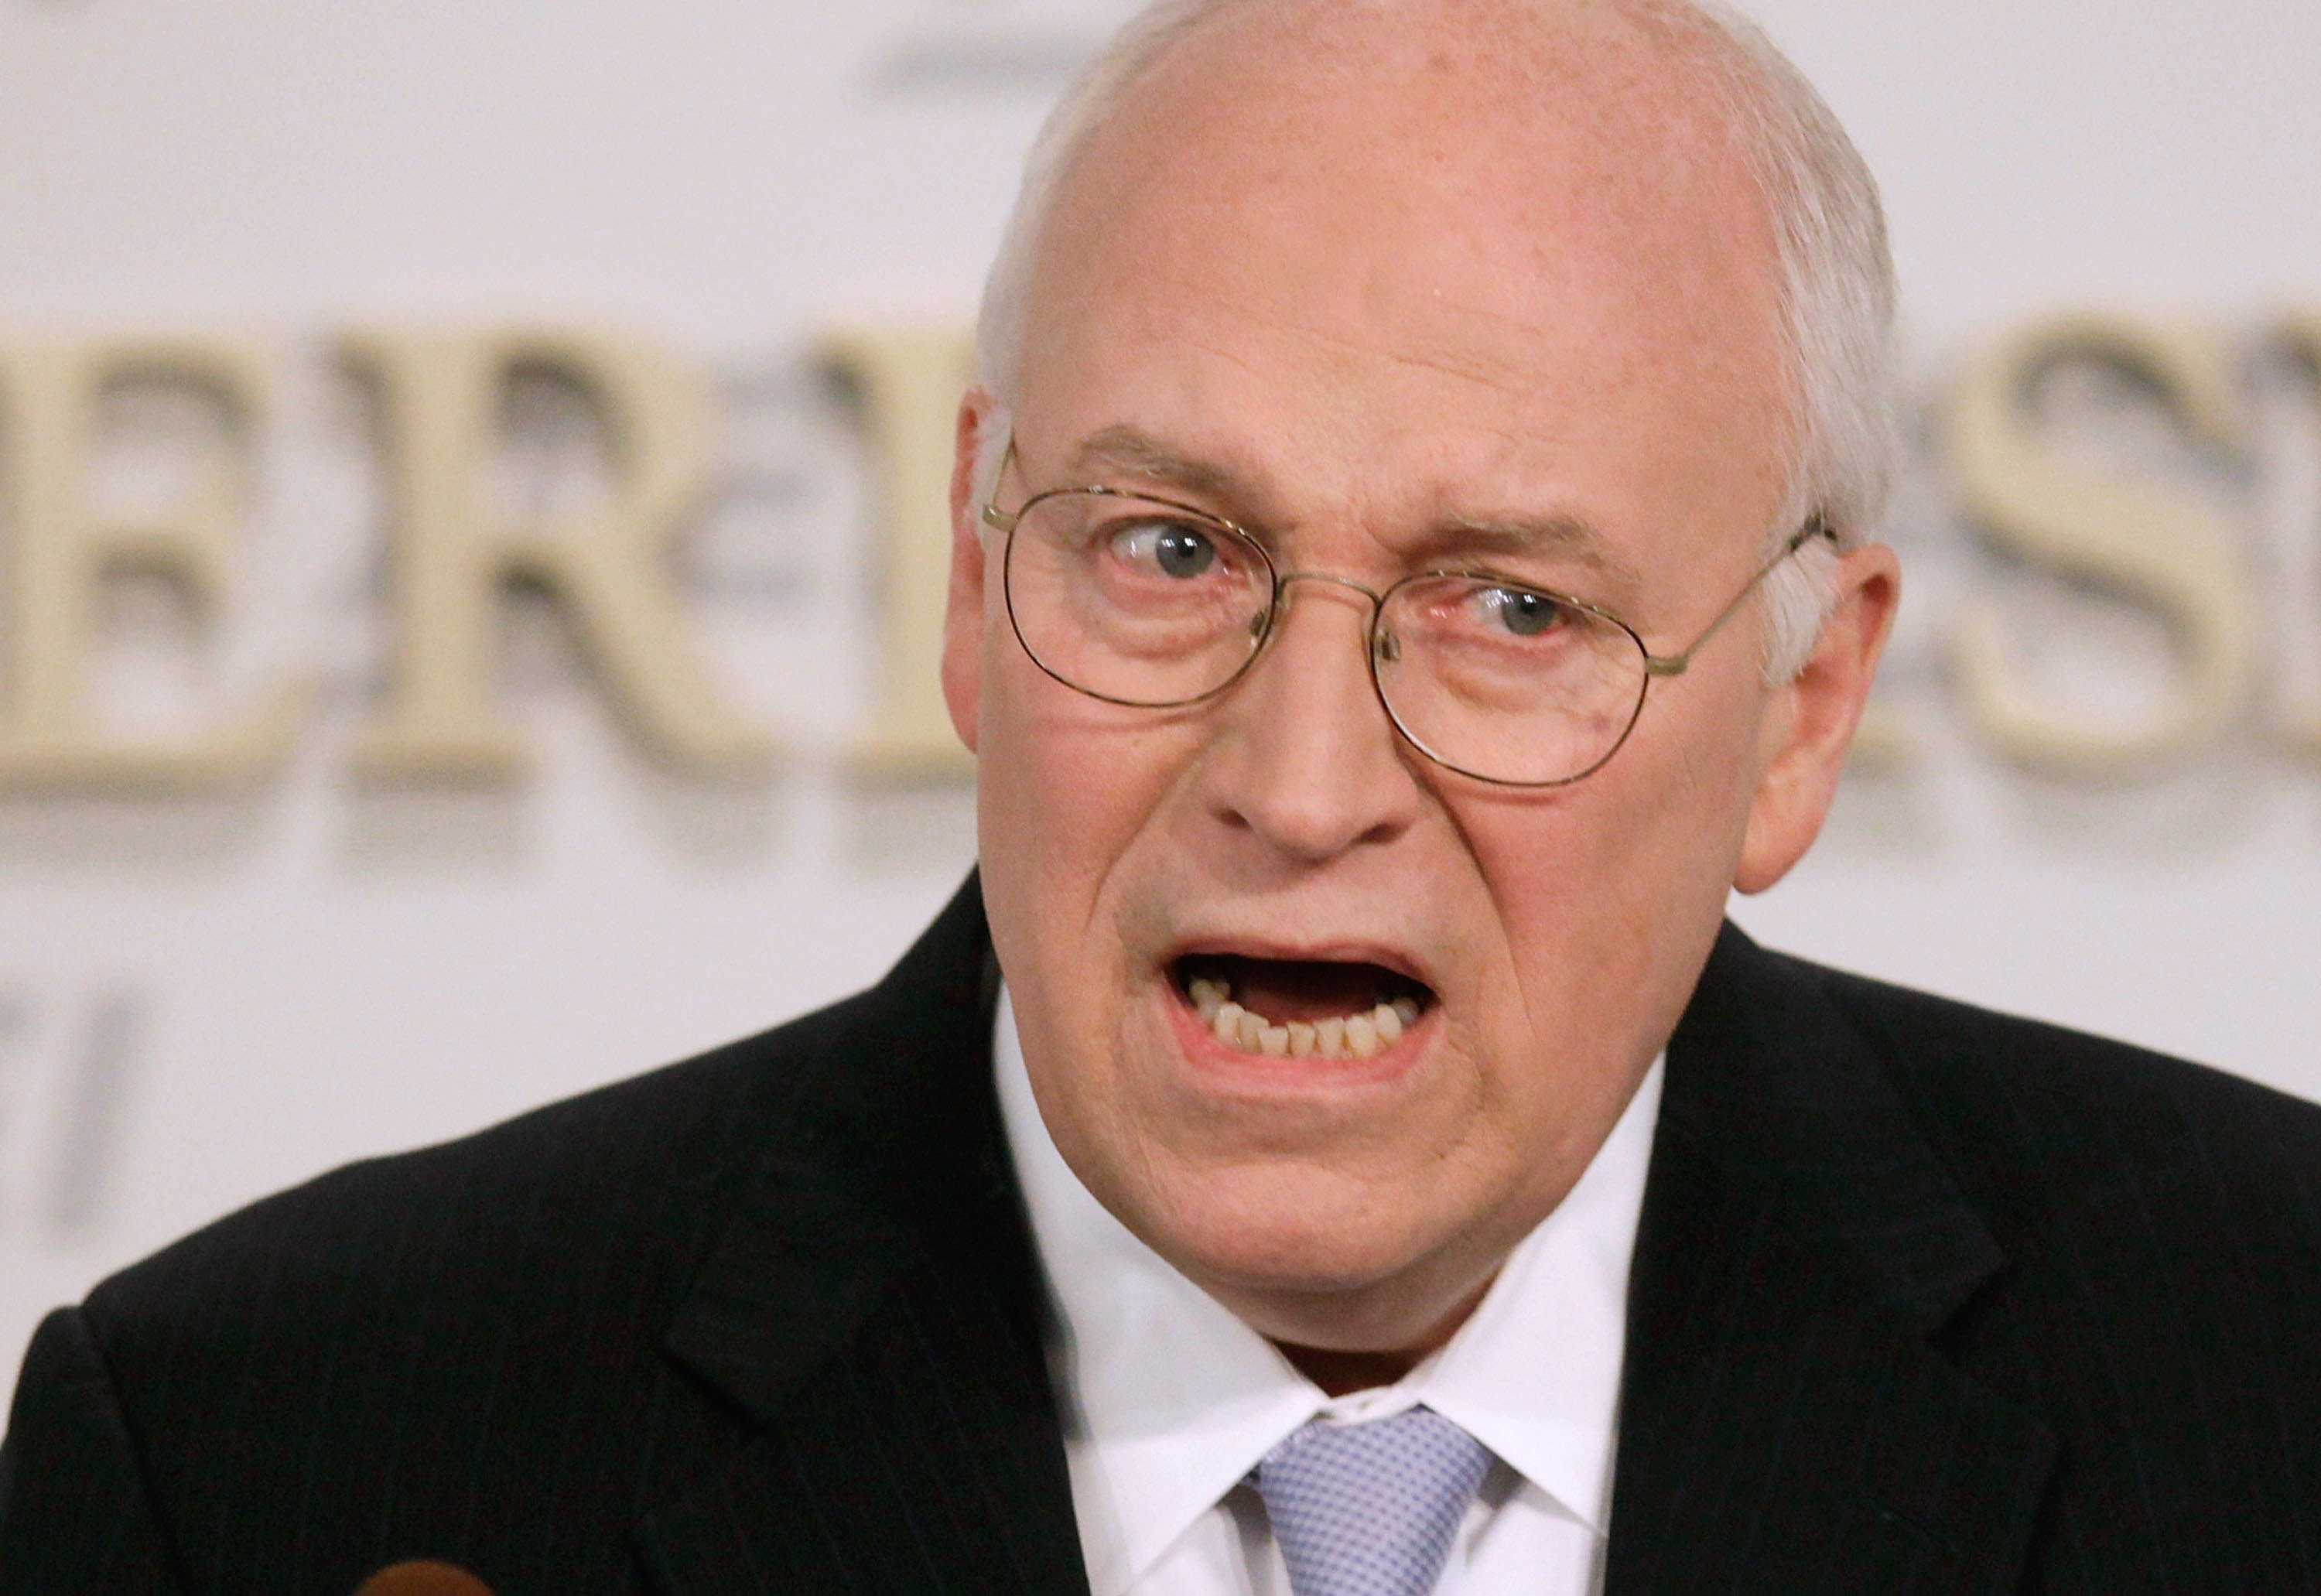 Dick Cheney Speaks At The American Enterprise Institute ...